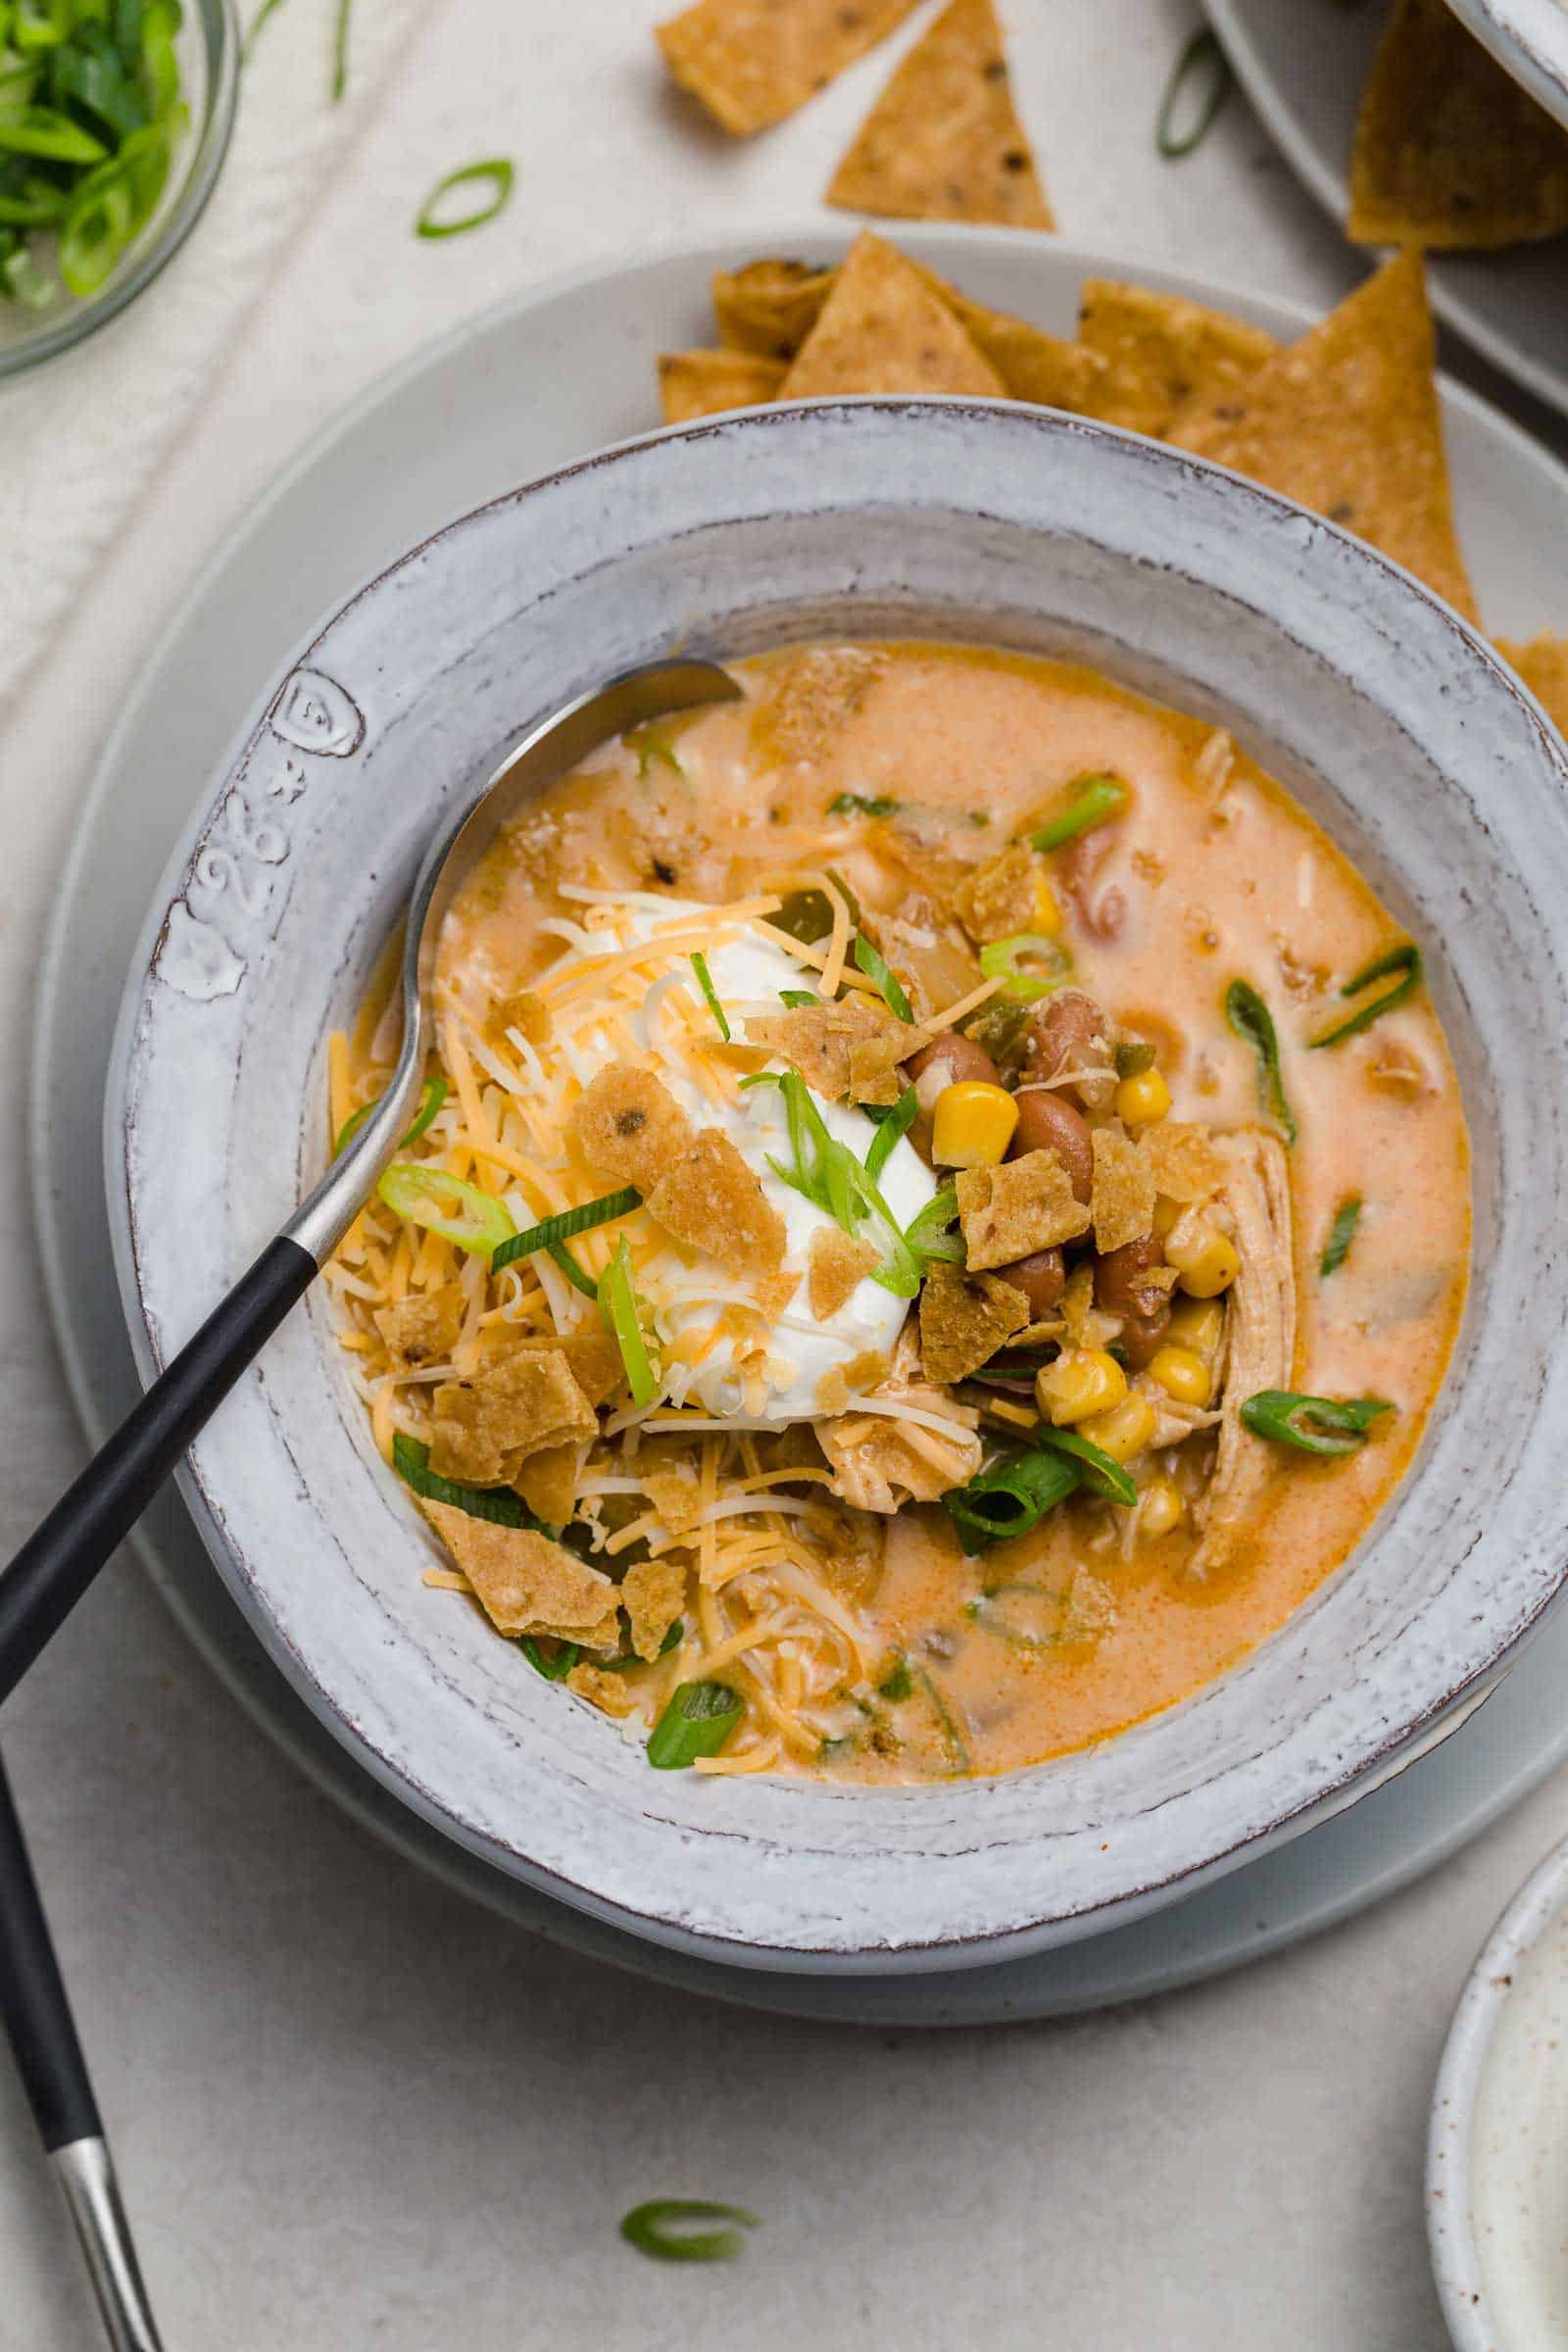 Southwest Chicken Chili Southwest Flavors In A Comforting Chili Dish